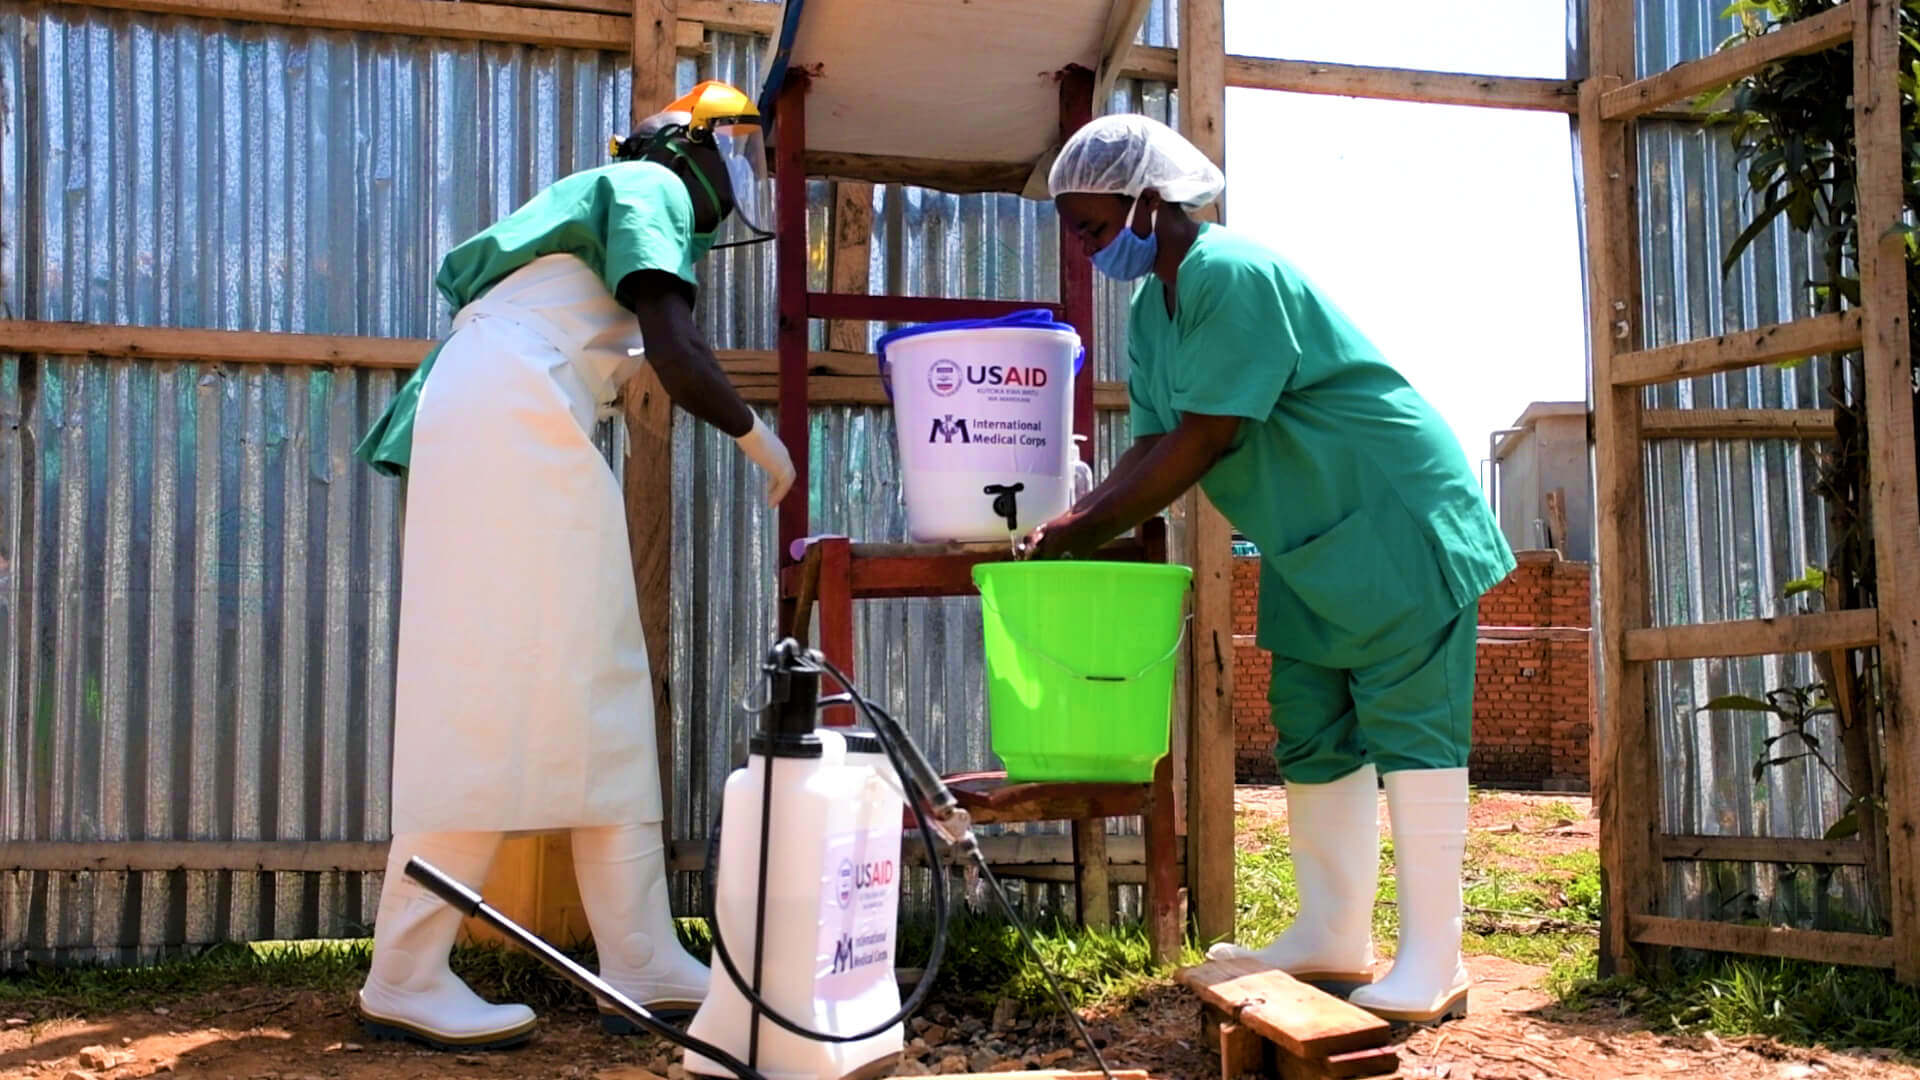 Our teams in the DRC are working with the Ministry of Health to battle new cases of Ebola that emerged in North Kivu.